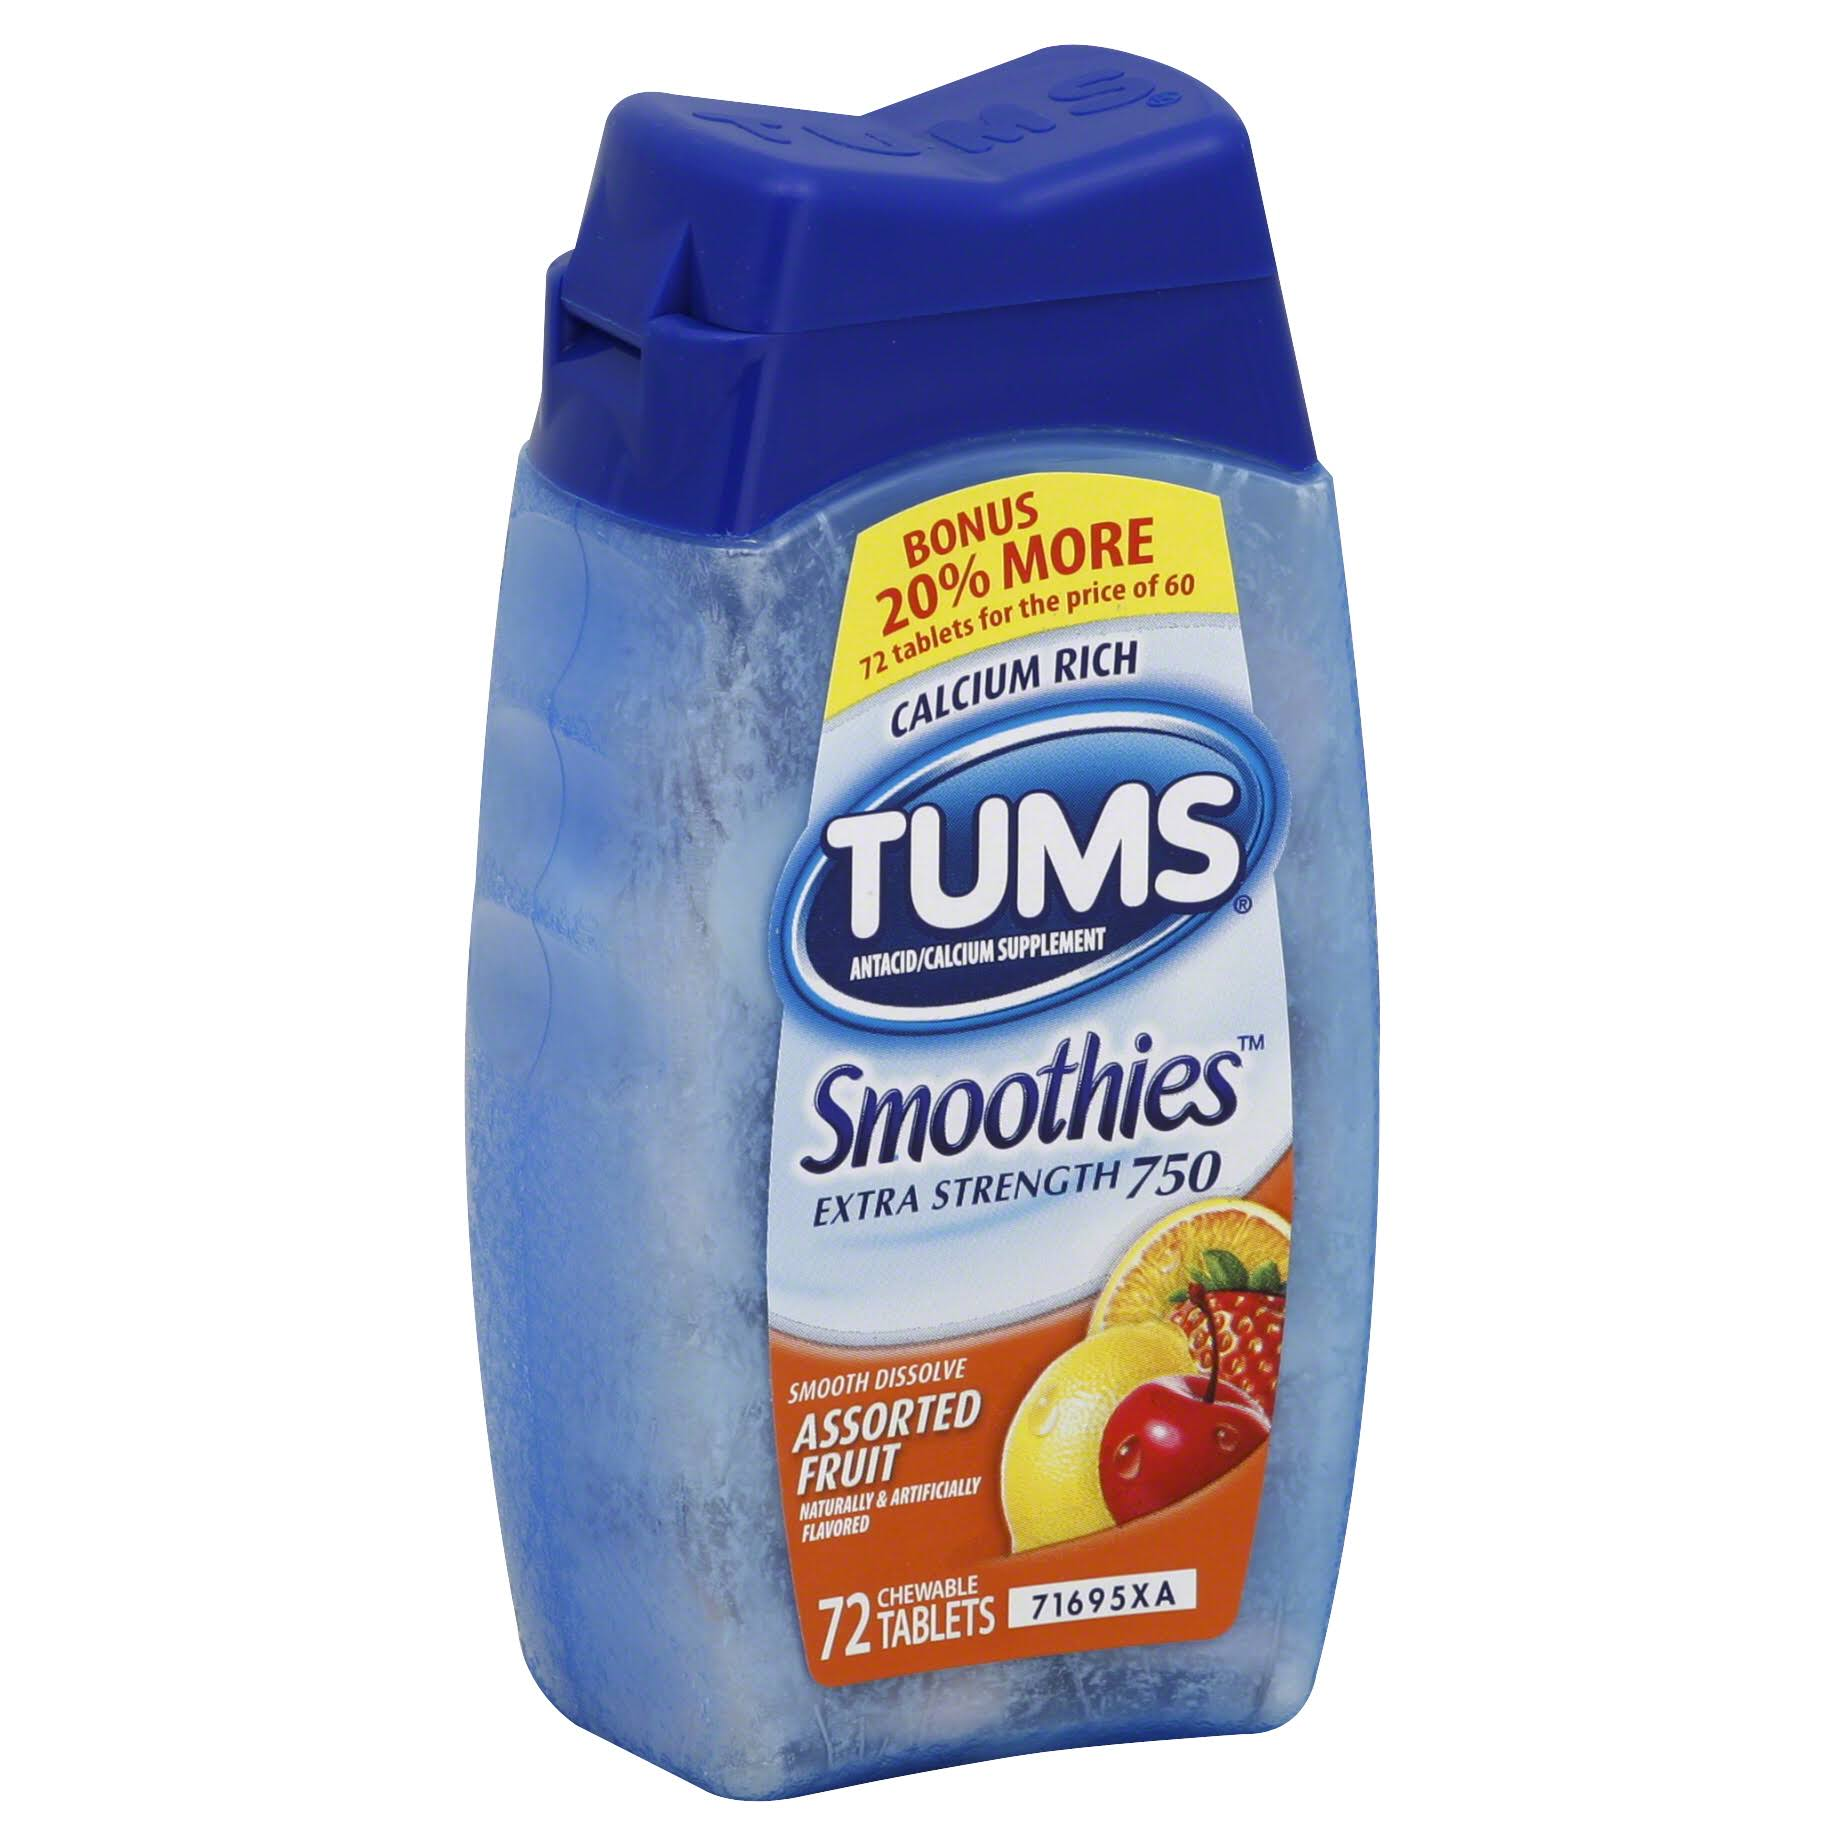 Tums Antacid Smoothies Supplement - Extra Strength 750, Assorted Fruit, 72ct